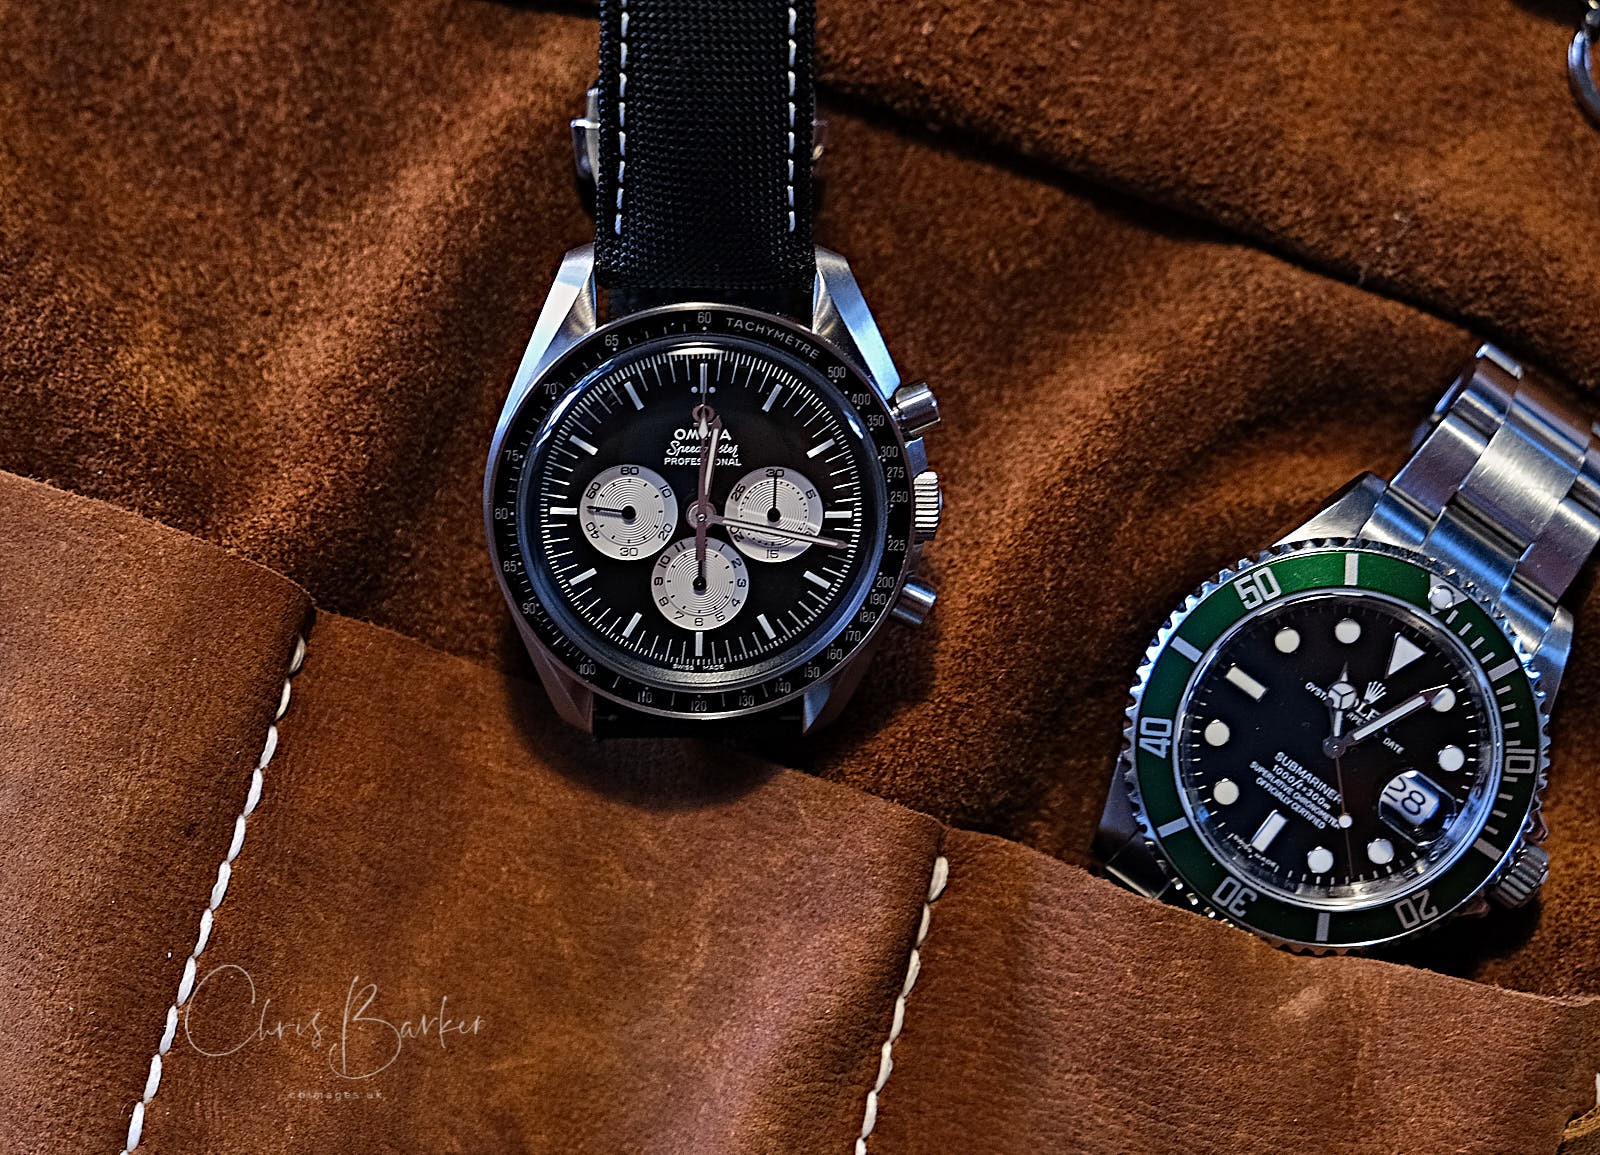 Two valuable watches close-up in a leather pouch.